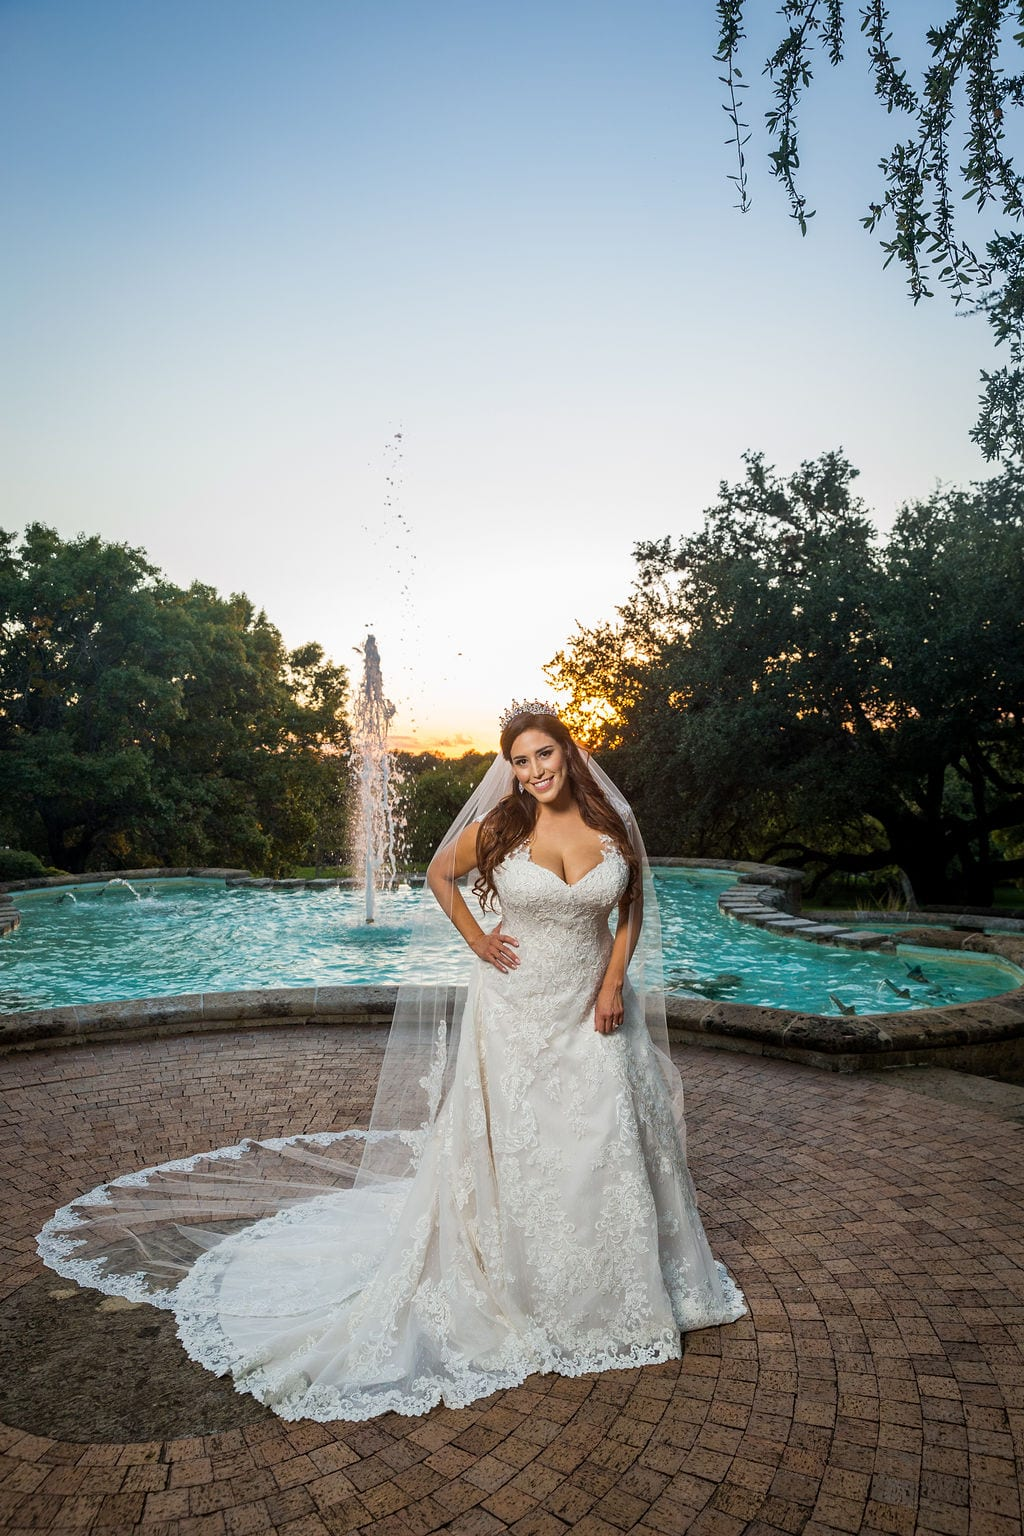 Mary Elizabeth's bridal at the McNay the fountain sassy laugh